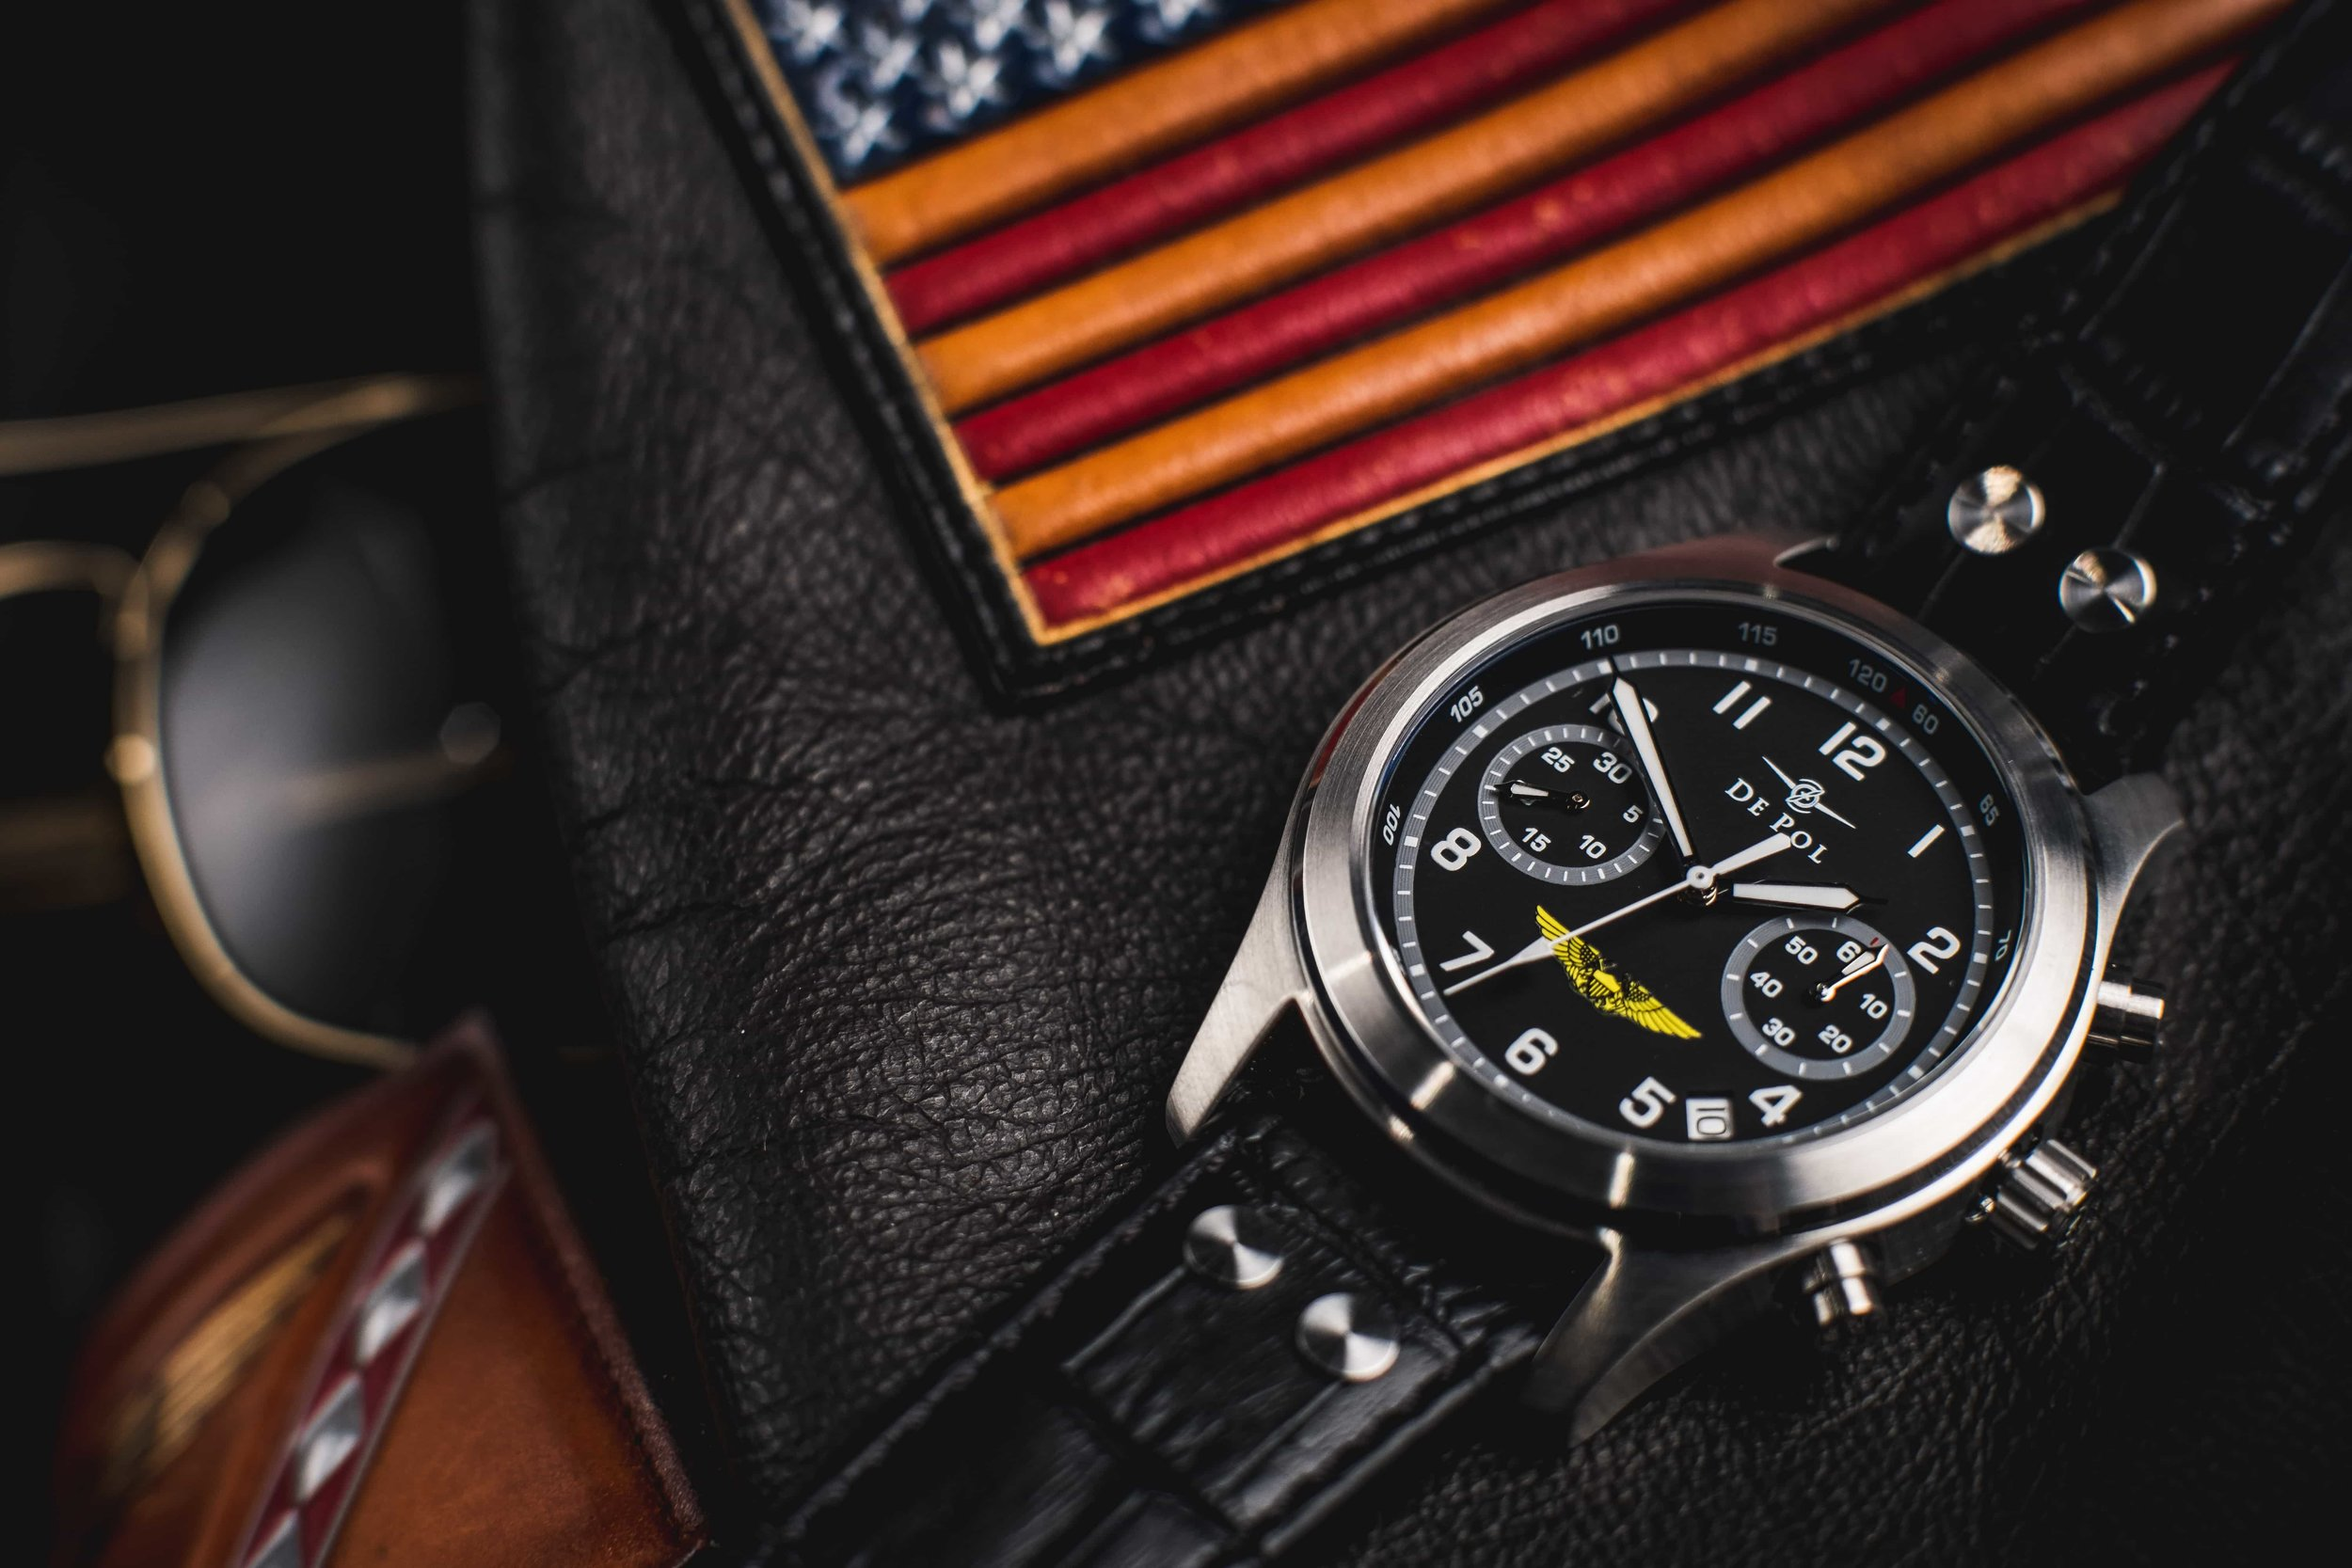 pilot aviator watch watches unique online best aviation chotovelli products affordable by premium figli